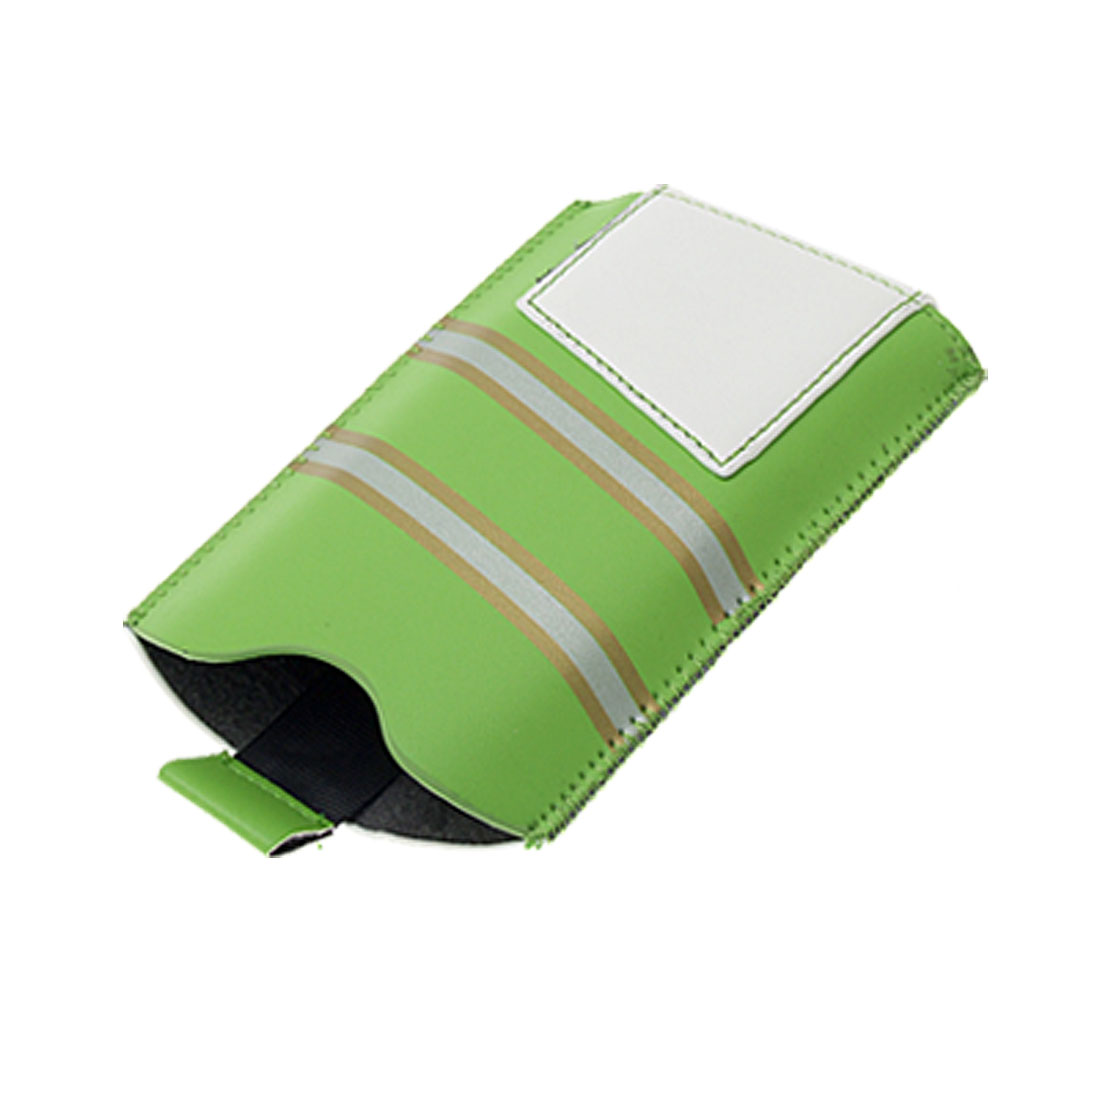 Faux Leather Pouch Hand Strap Carry Case for iPhone 3G